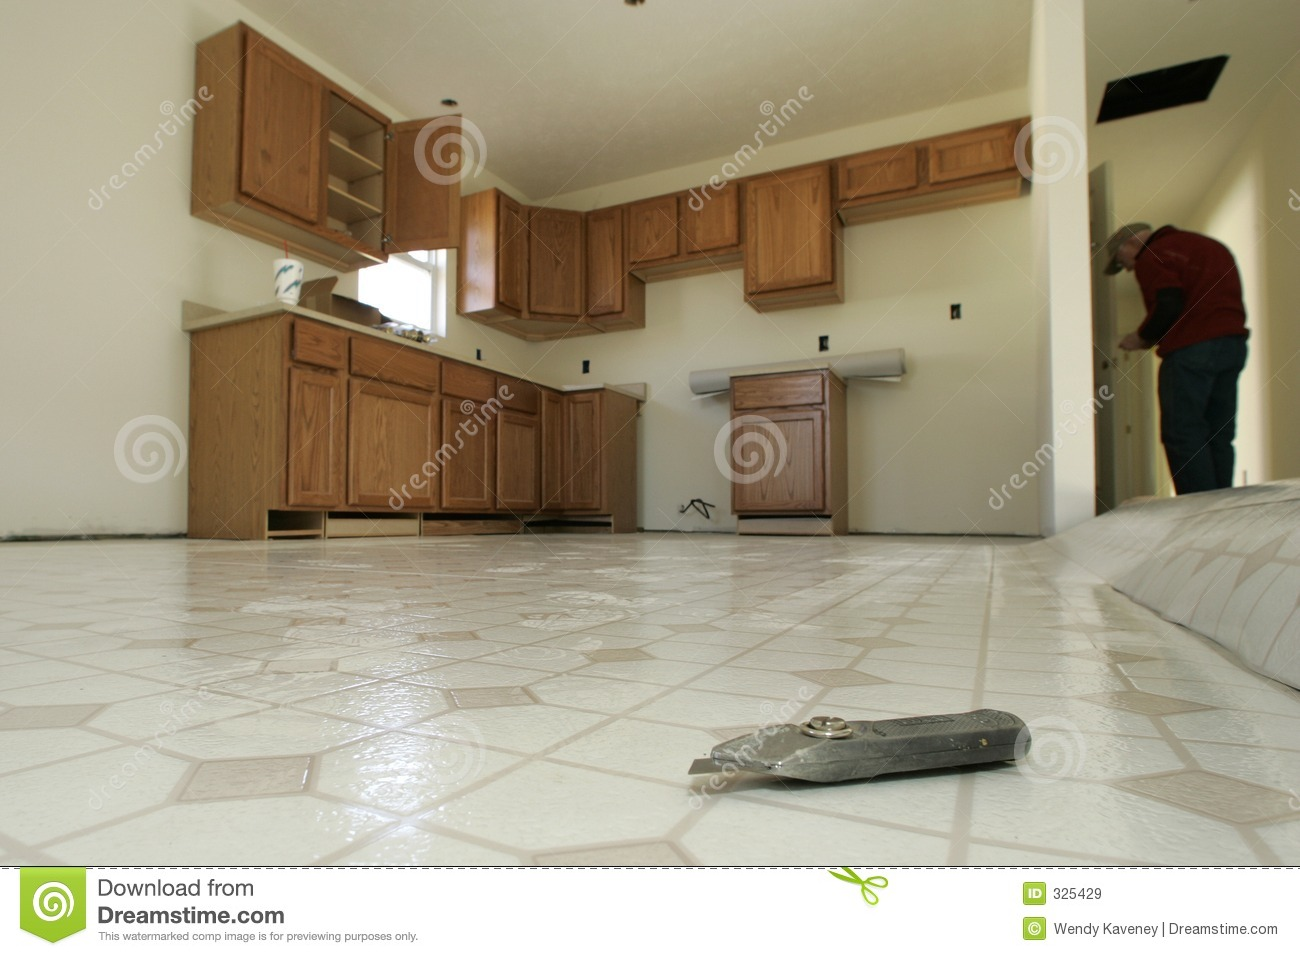 kitchen floor installation royalty free stock images ForKitchen Flooring Installation